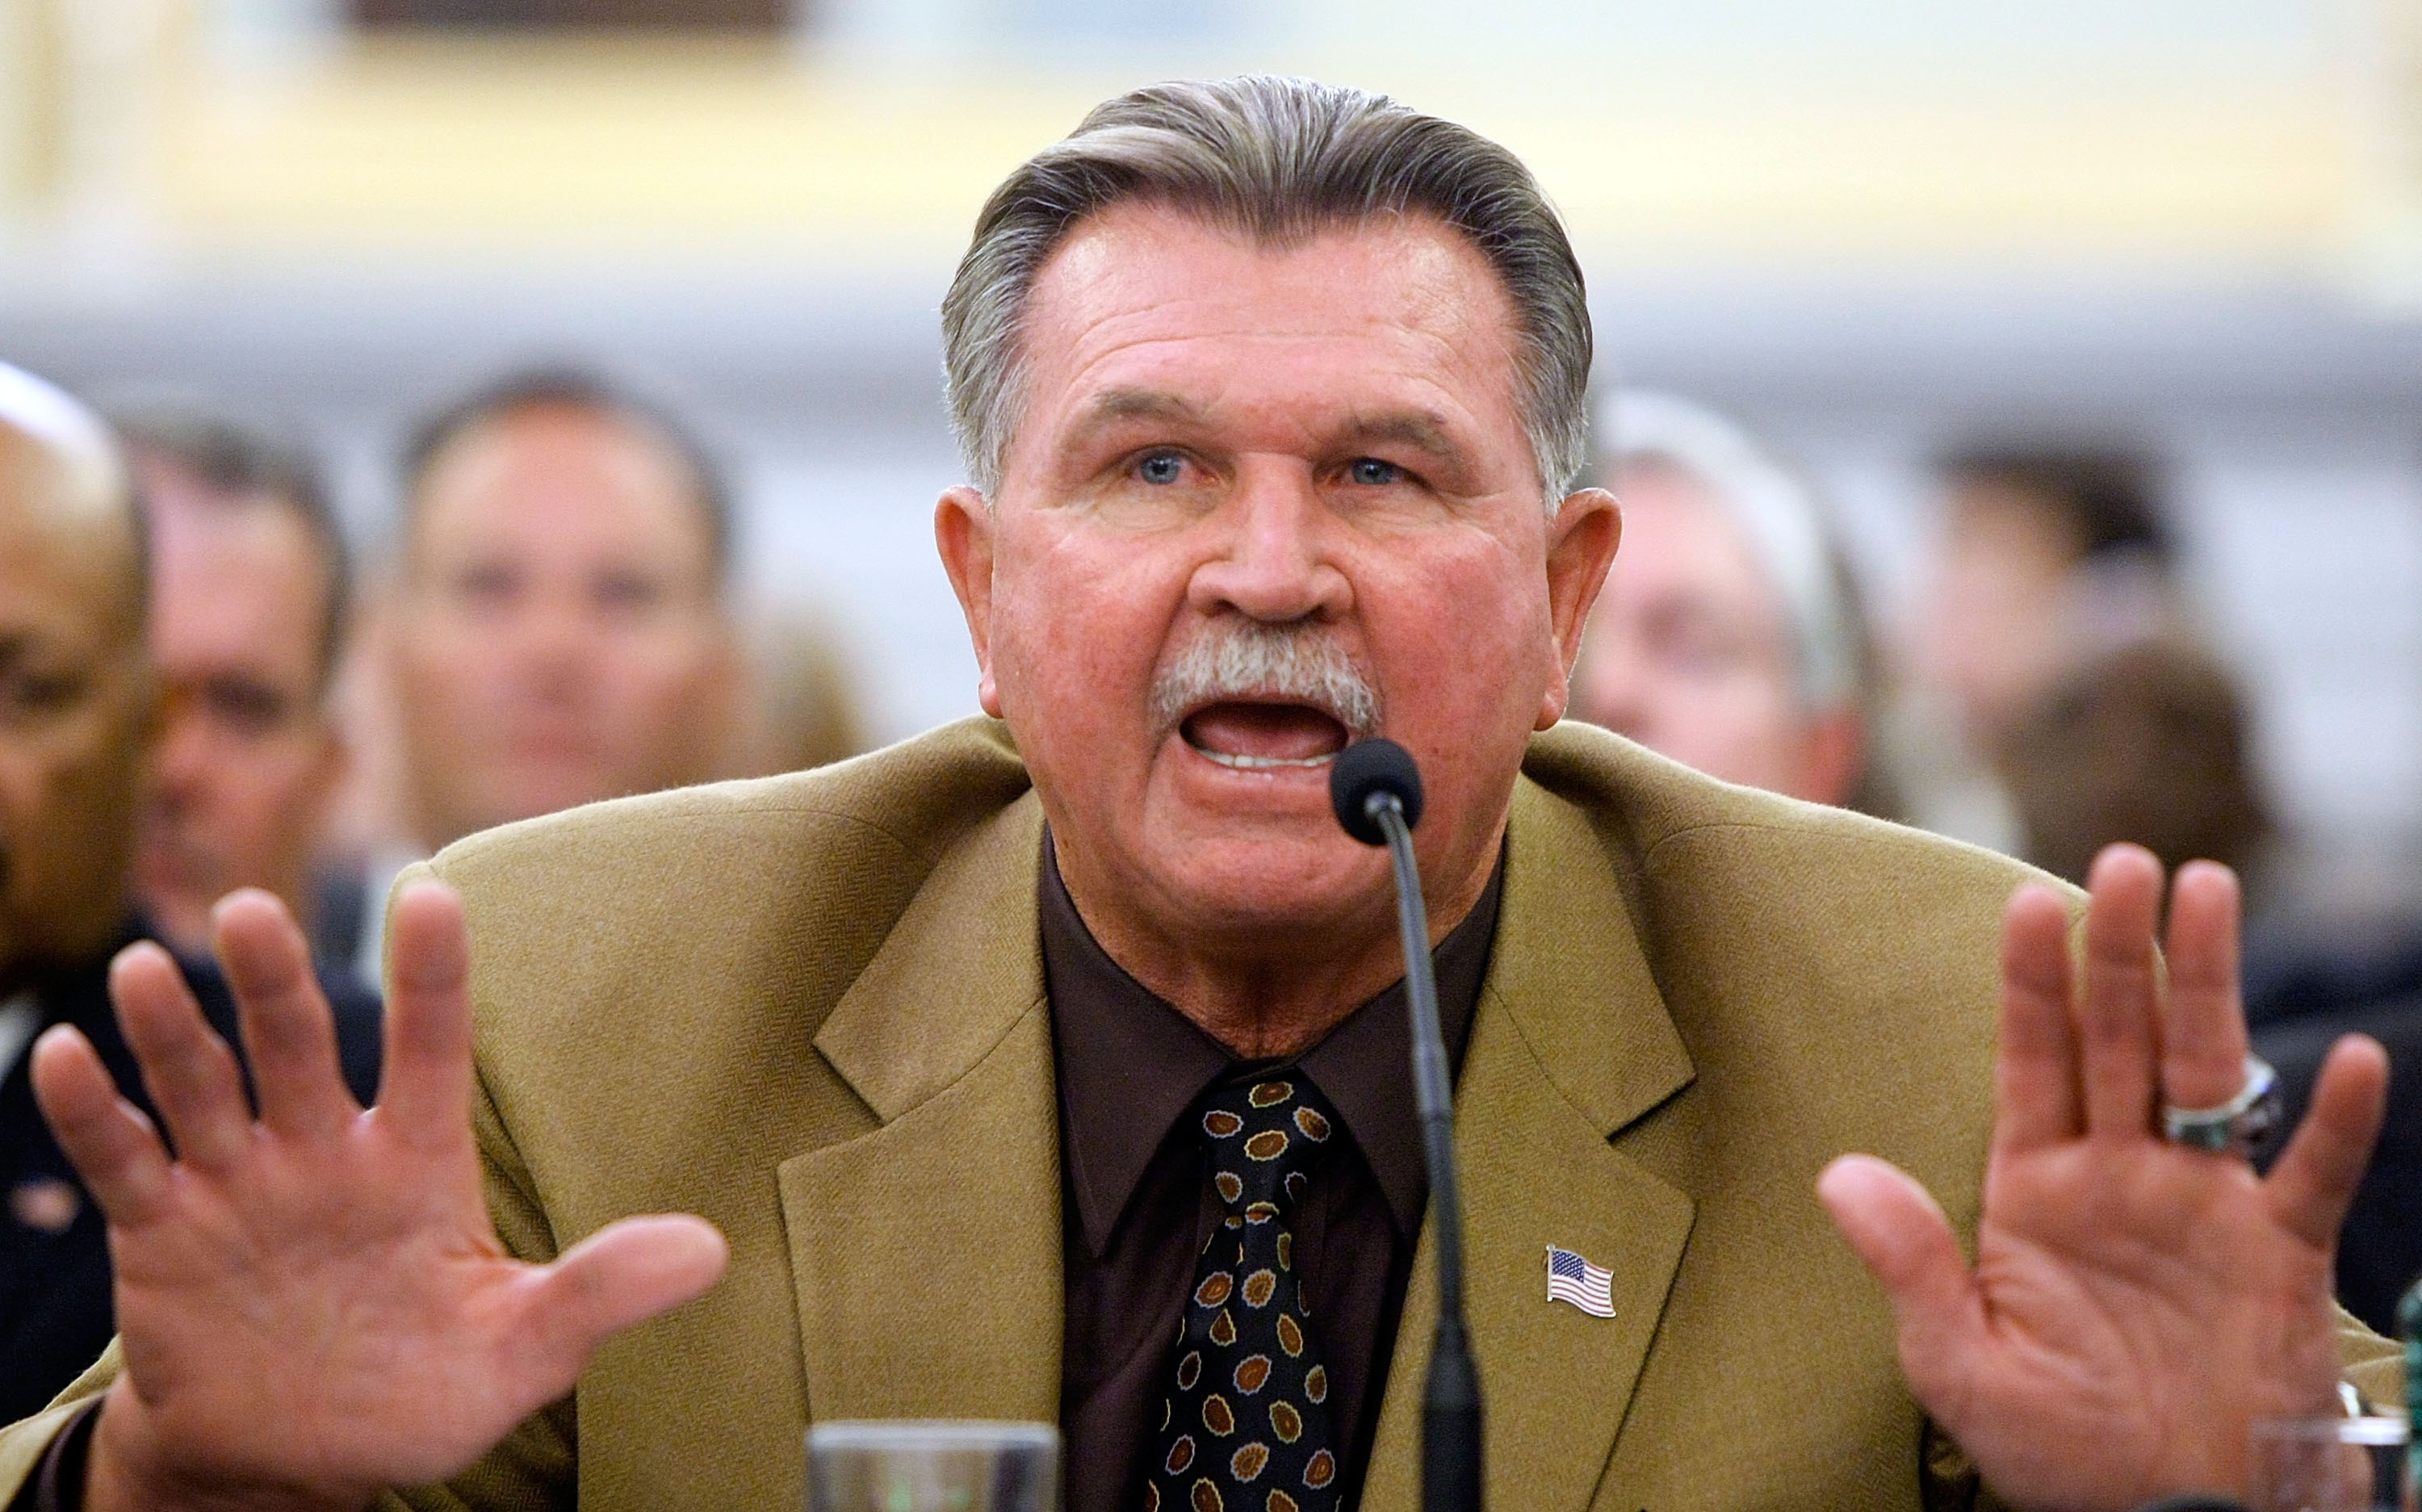 Ditka's biggest regret: Not running against Obama